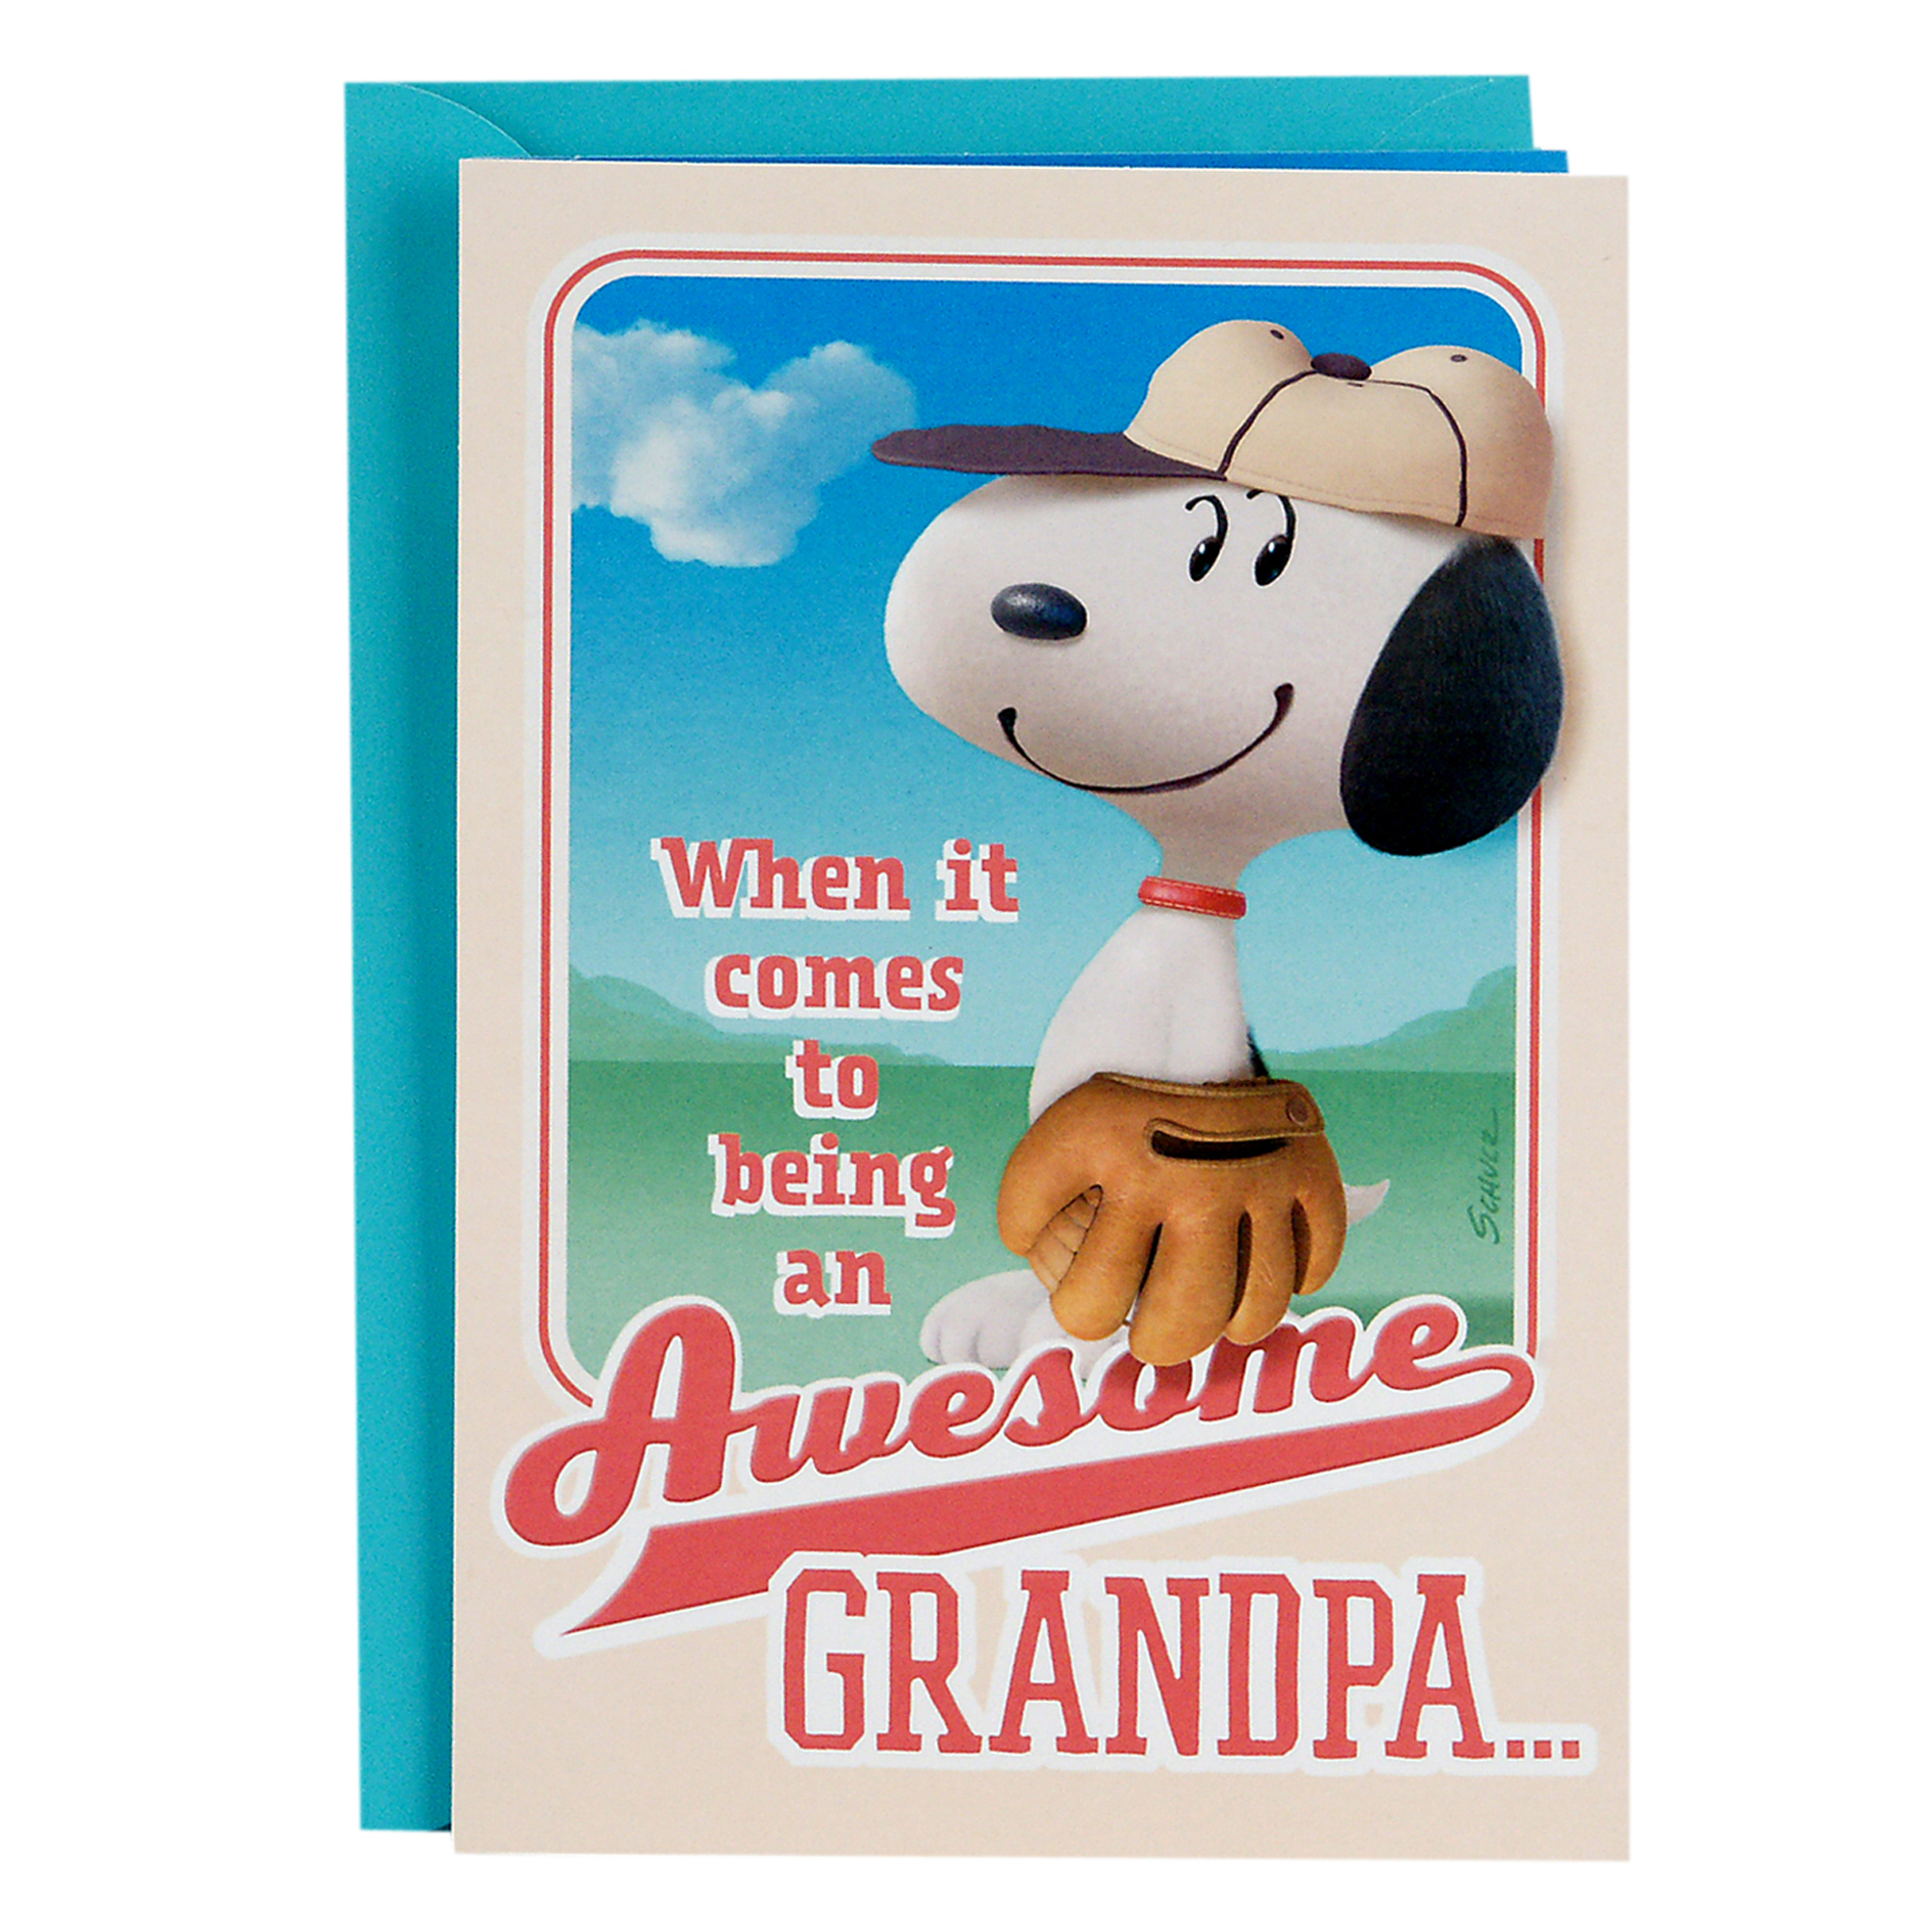 Hallmark, Peanuts Snoopy Baseball, Father's Day Greeting Card, for Grandpa from Kids or Child